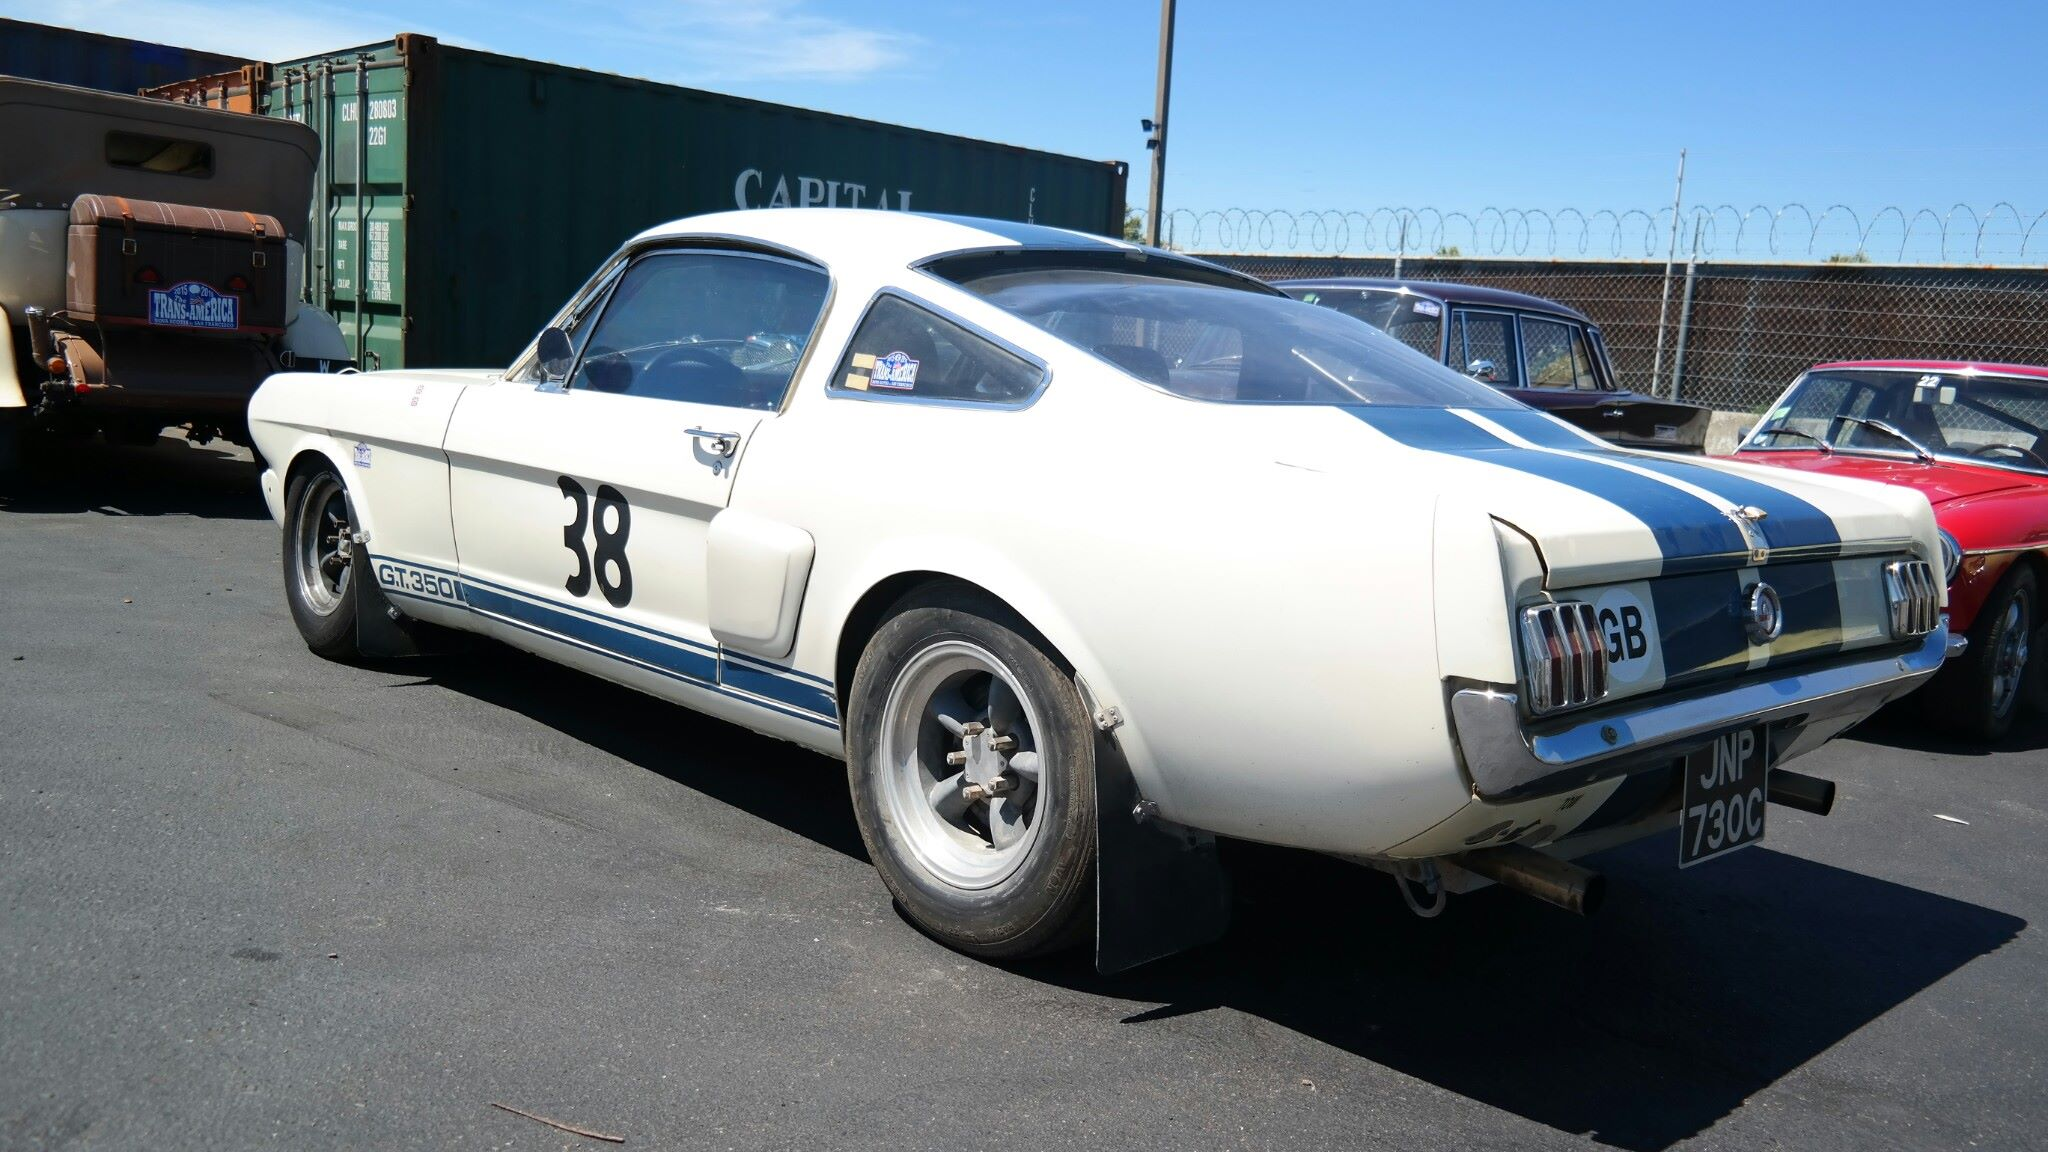 Mustang shipping from the USA to New Zealand